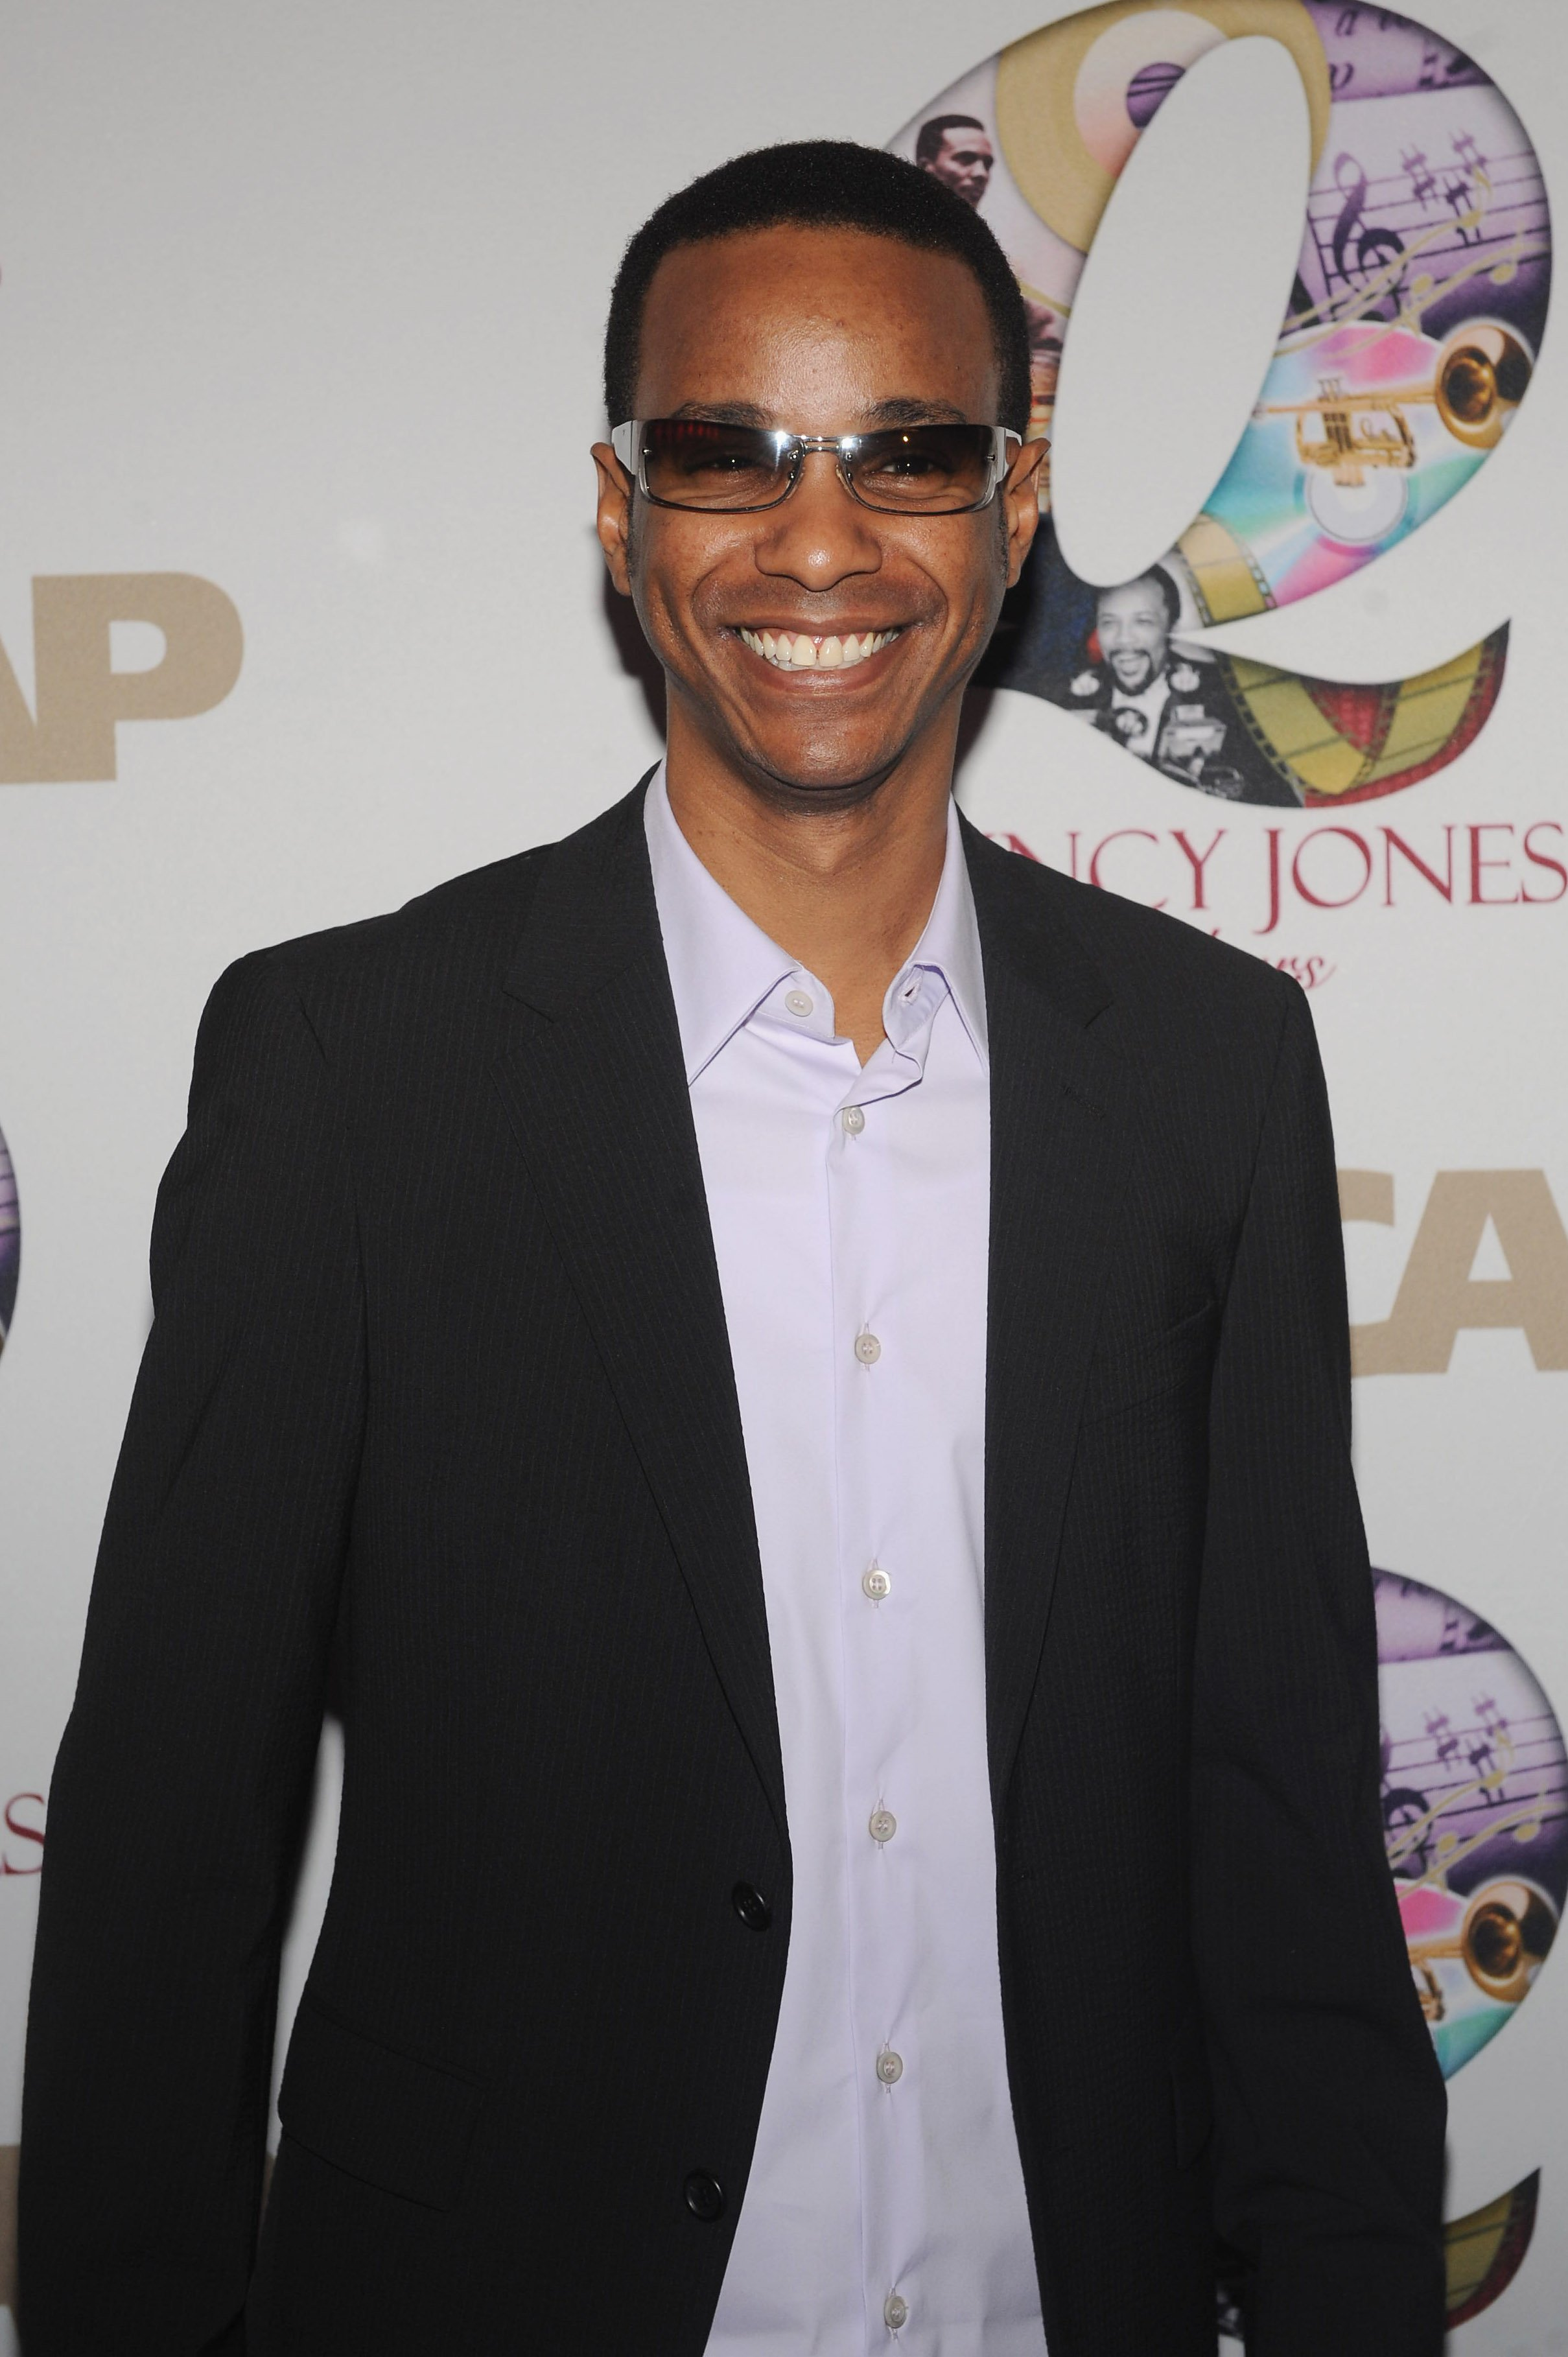 Tevin Campbell attends the ASCAP Pied Piper award celebration in honor of Quincy Jones, 2008. | Photo: GettyImages